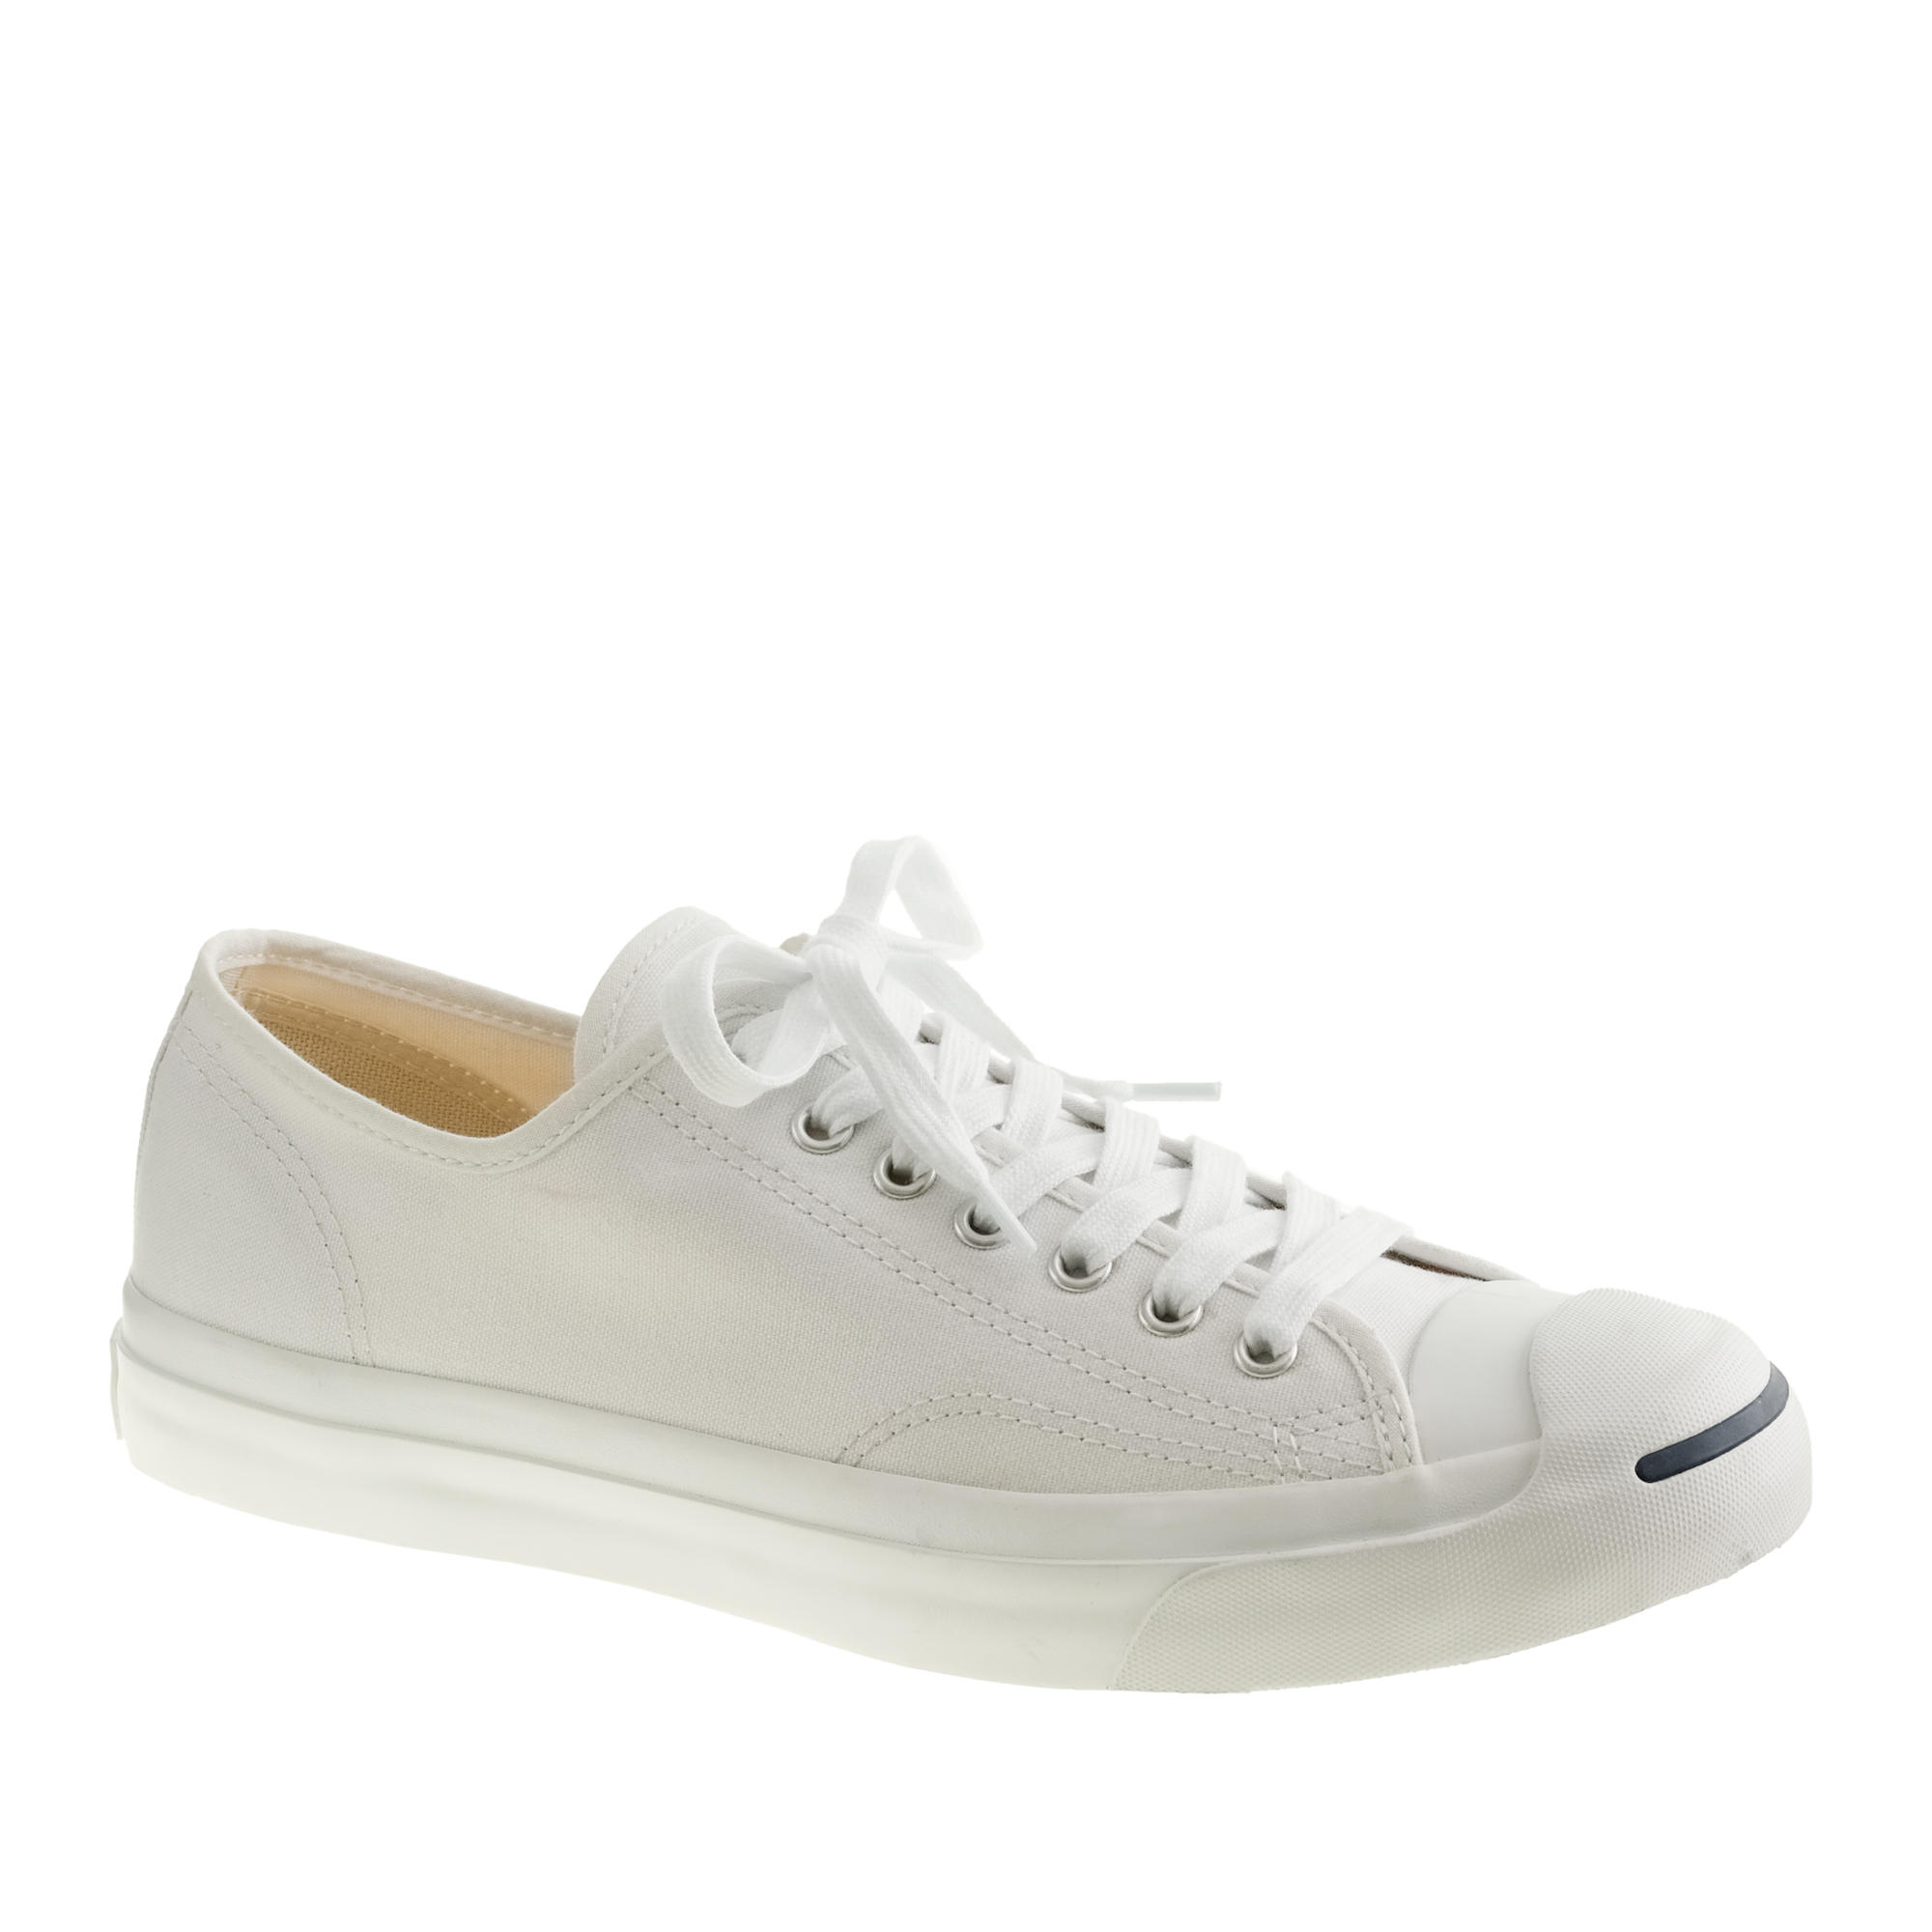 f7dba6ce98c9 ... wholesale lyst j.crew unisex converse remastered jack purcell sneakers  in fdd4d 59ee2